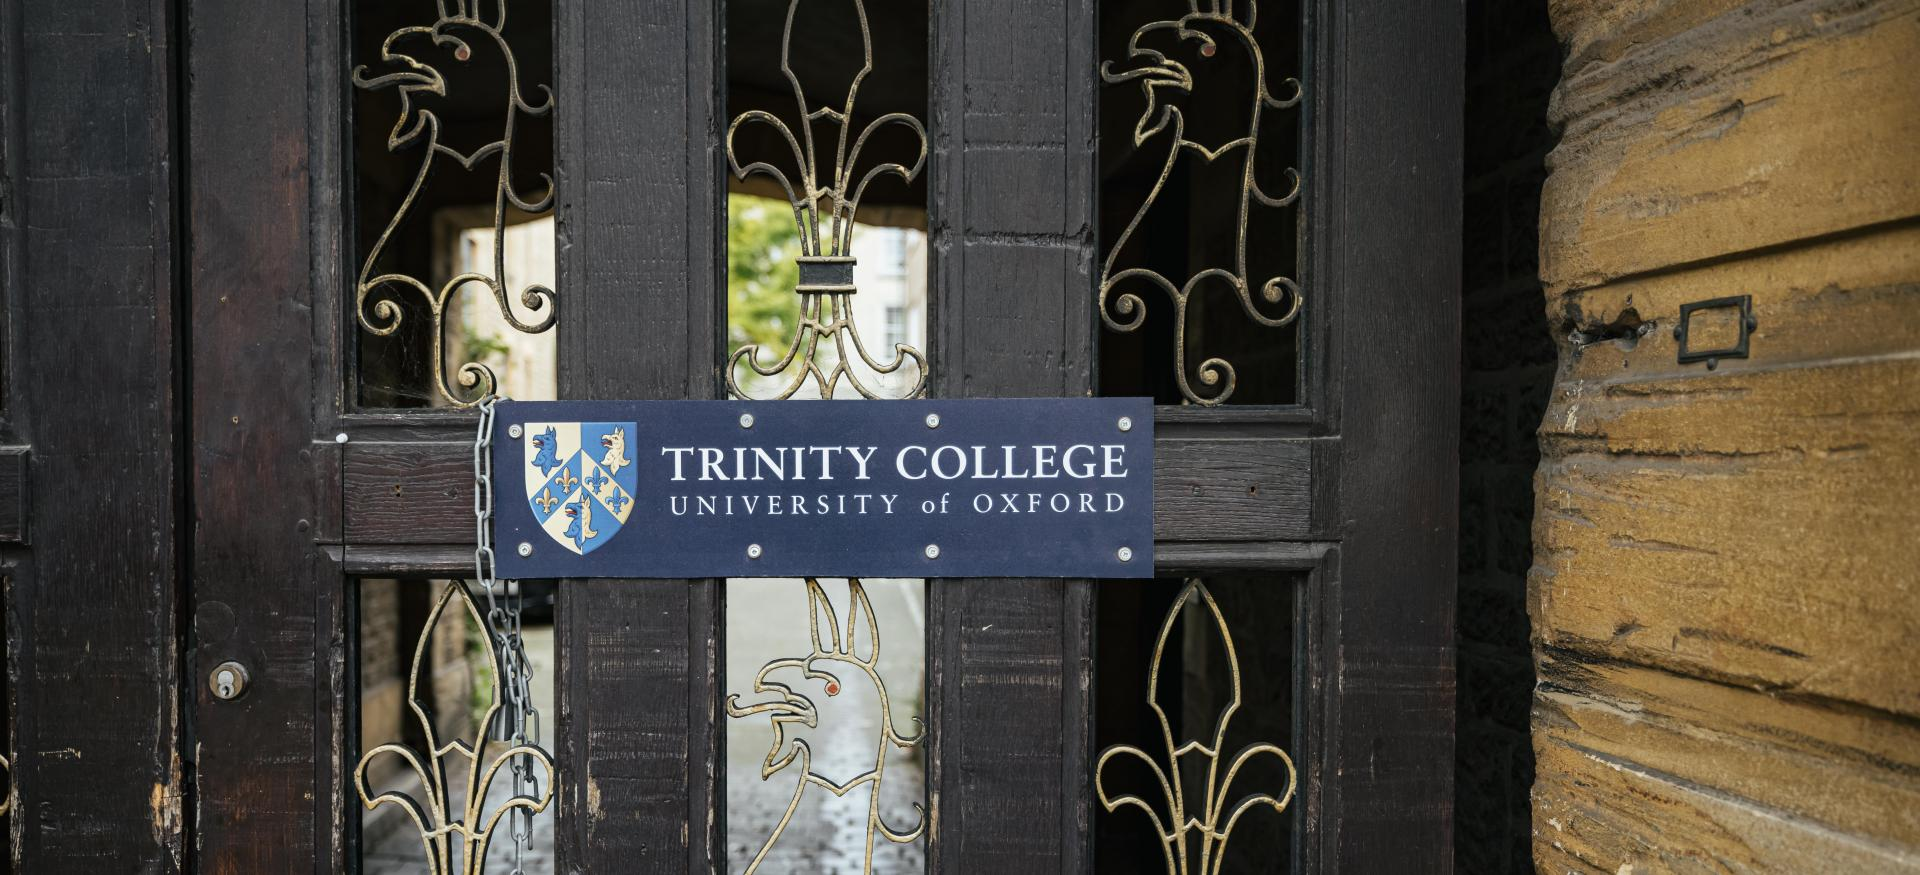 The side entrace to trinity College with ironwork in the shape of gryphons and a sign reading 'Trinity College Oxford'